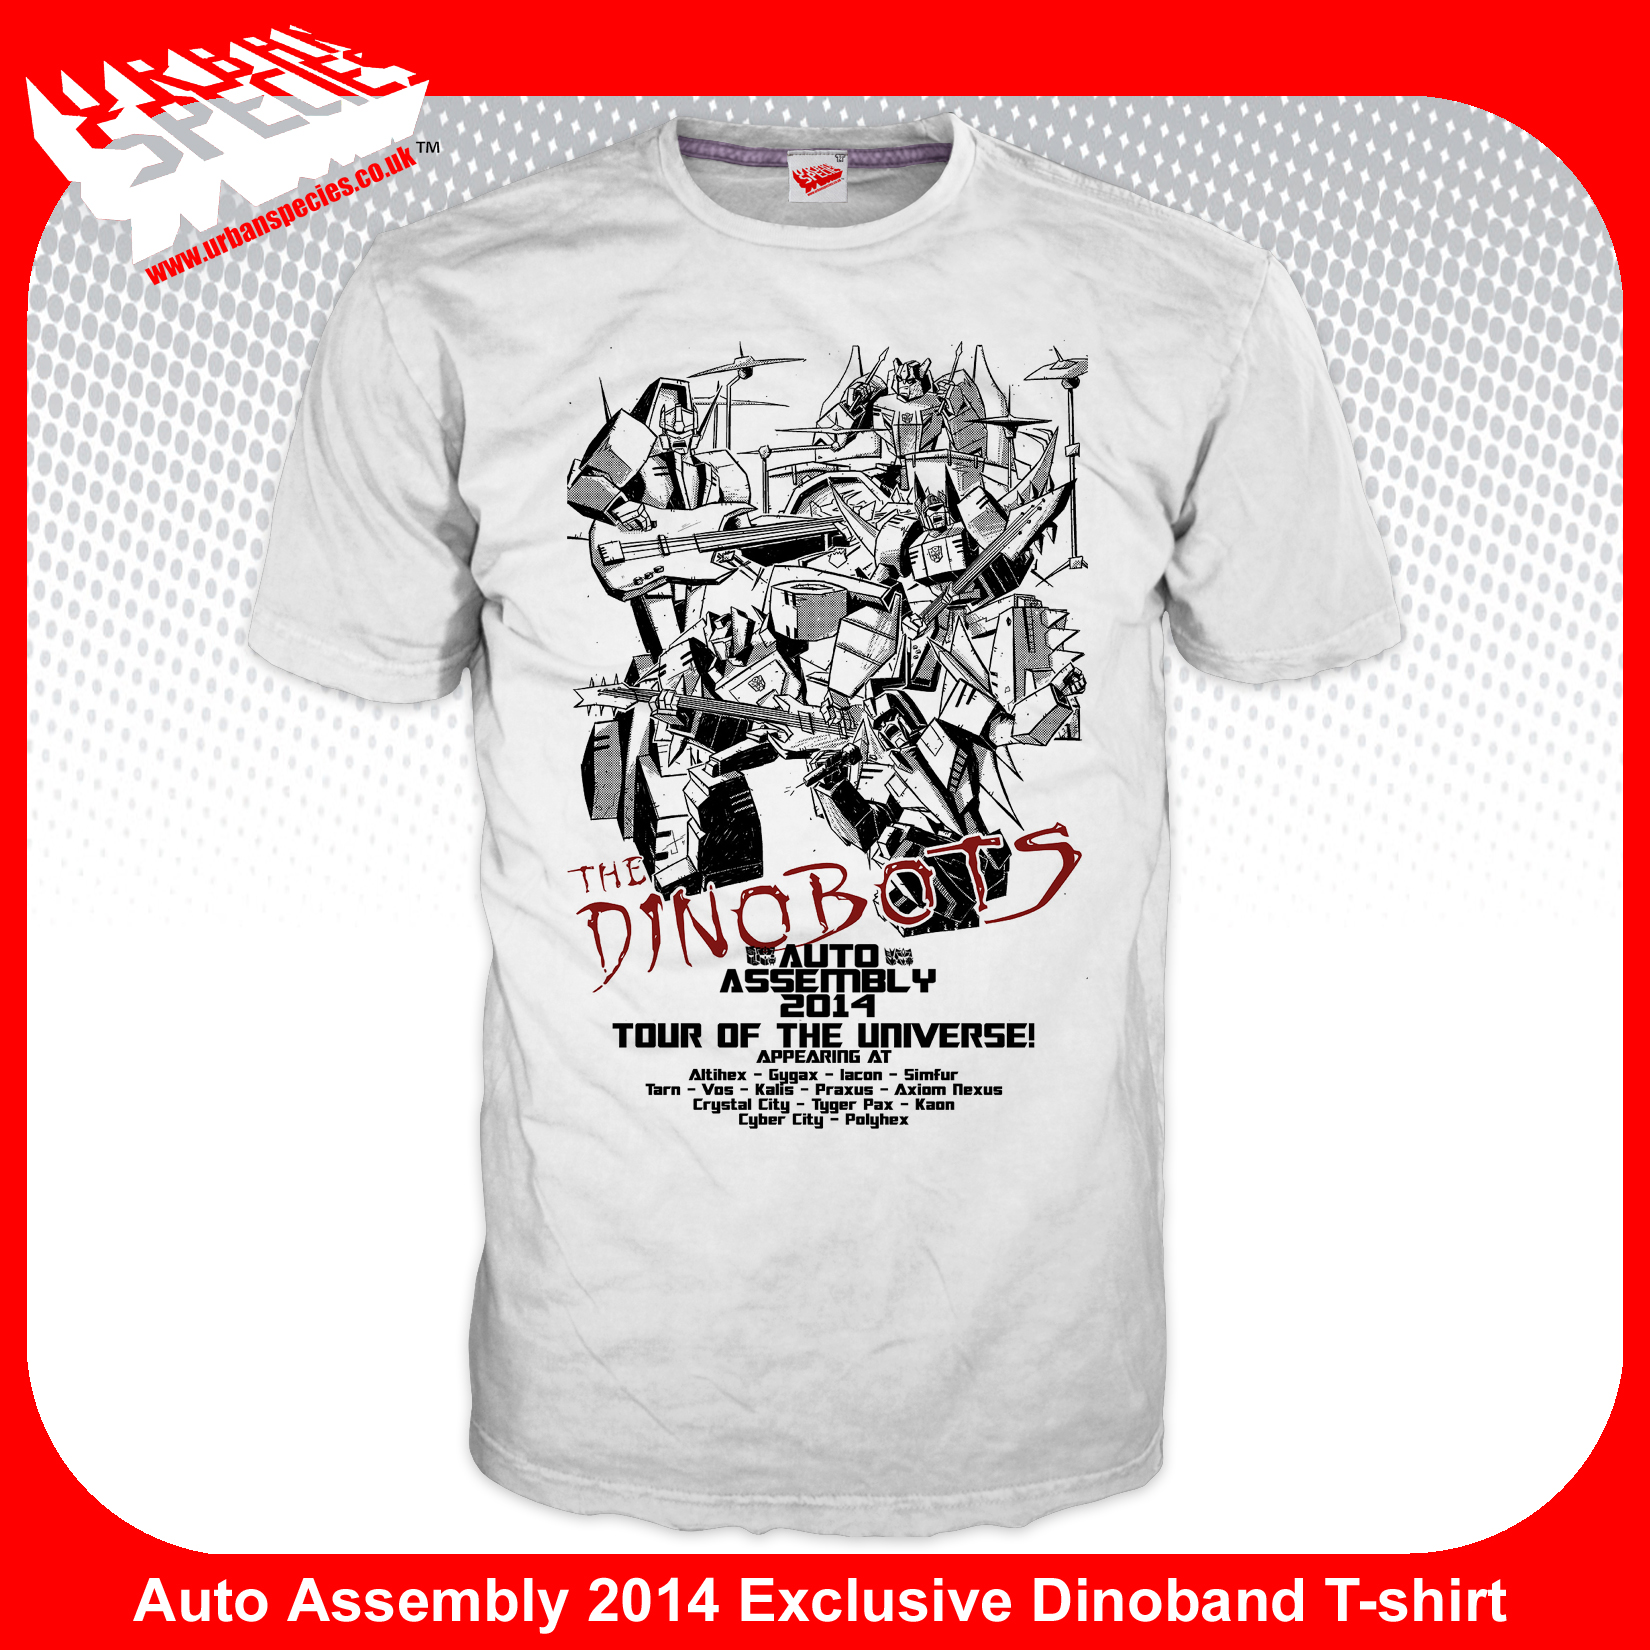 Auto Assembly 2014 Dinoband Exclusive T-Shirt